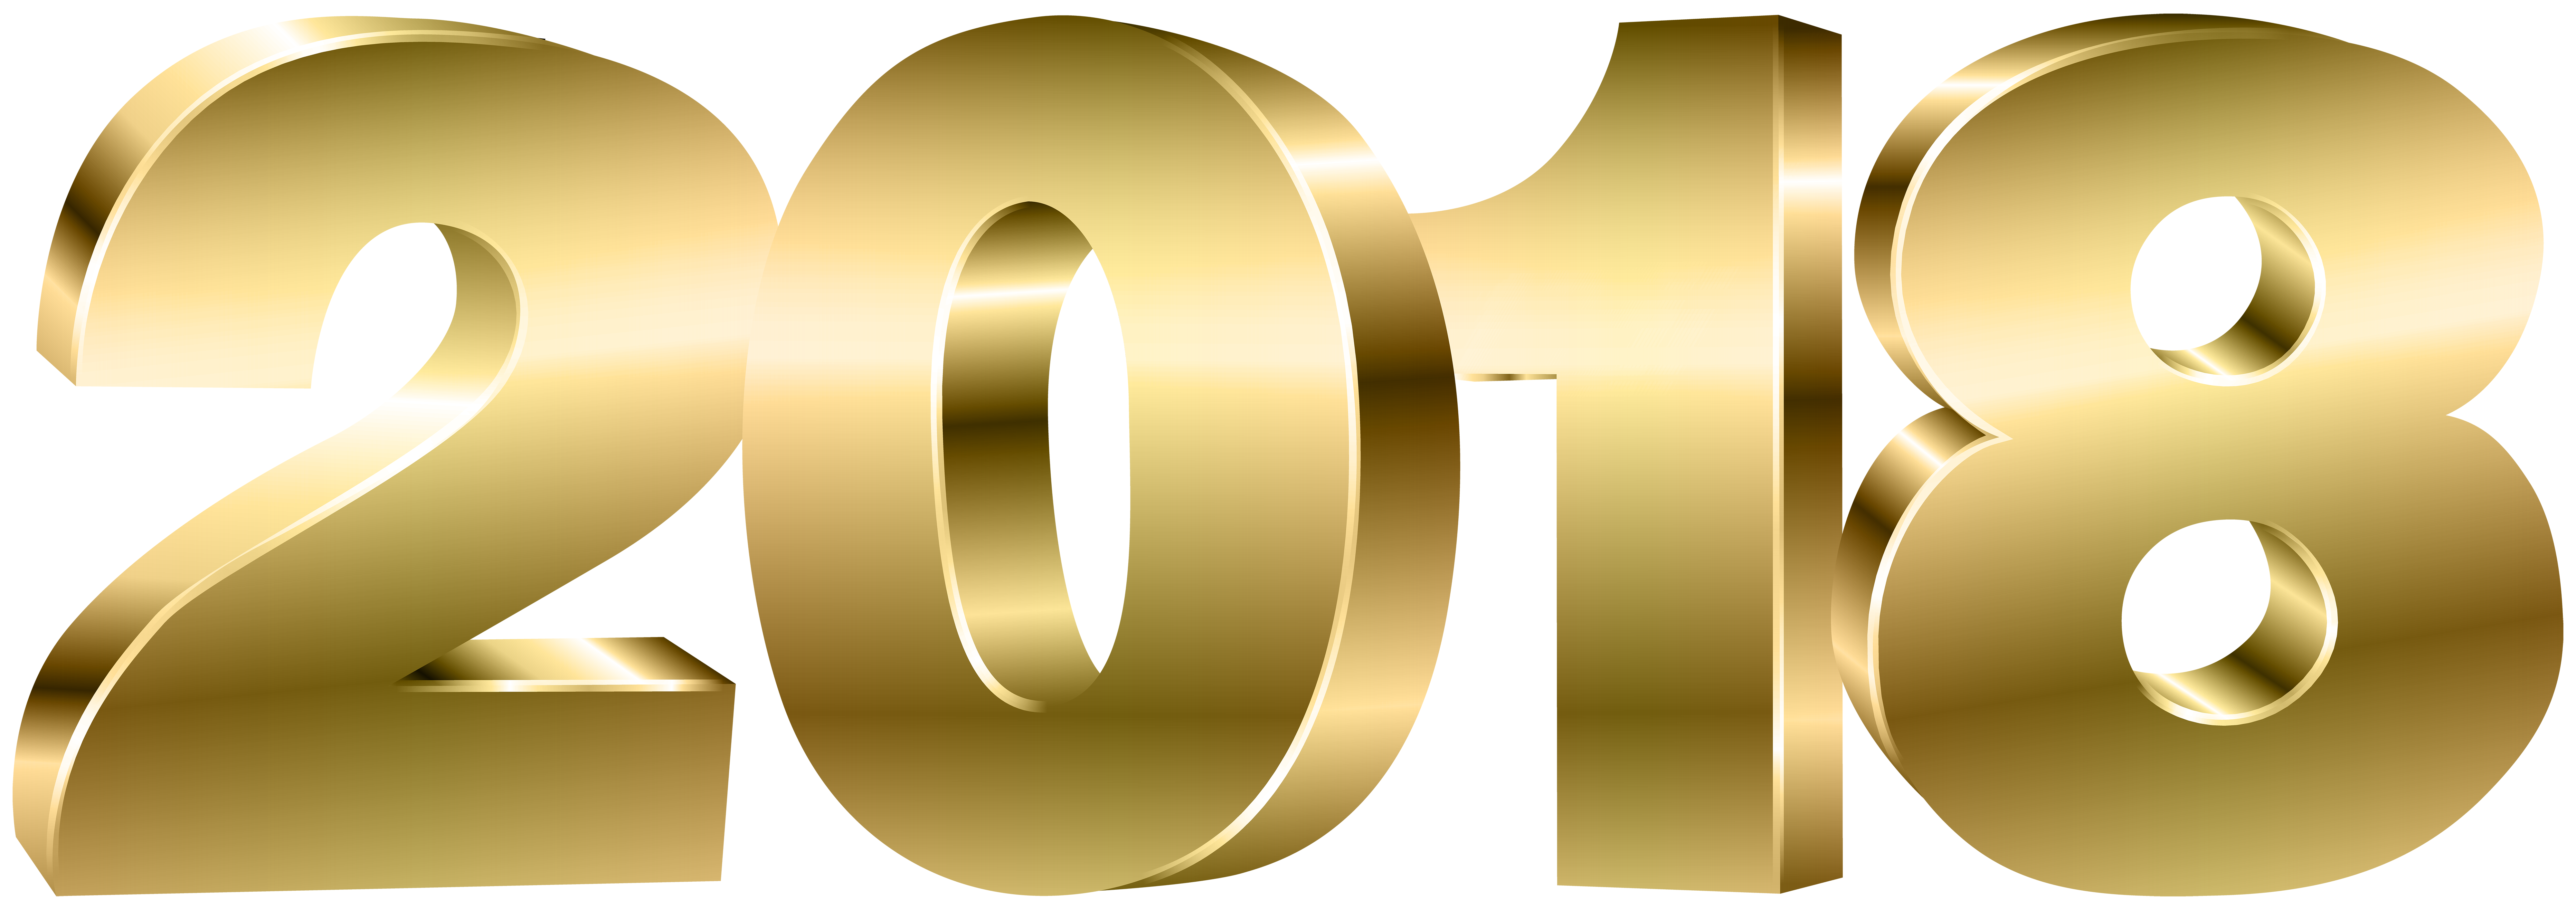 2018 gold png. Clipart image gallery